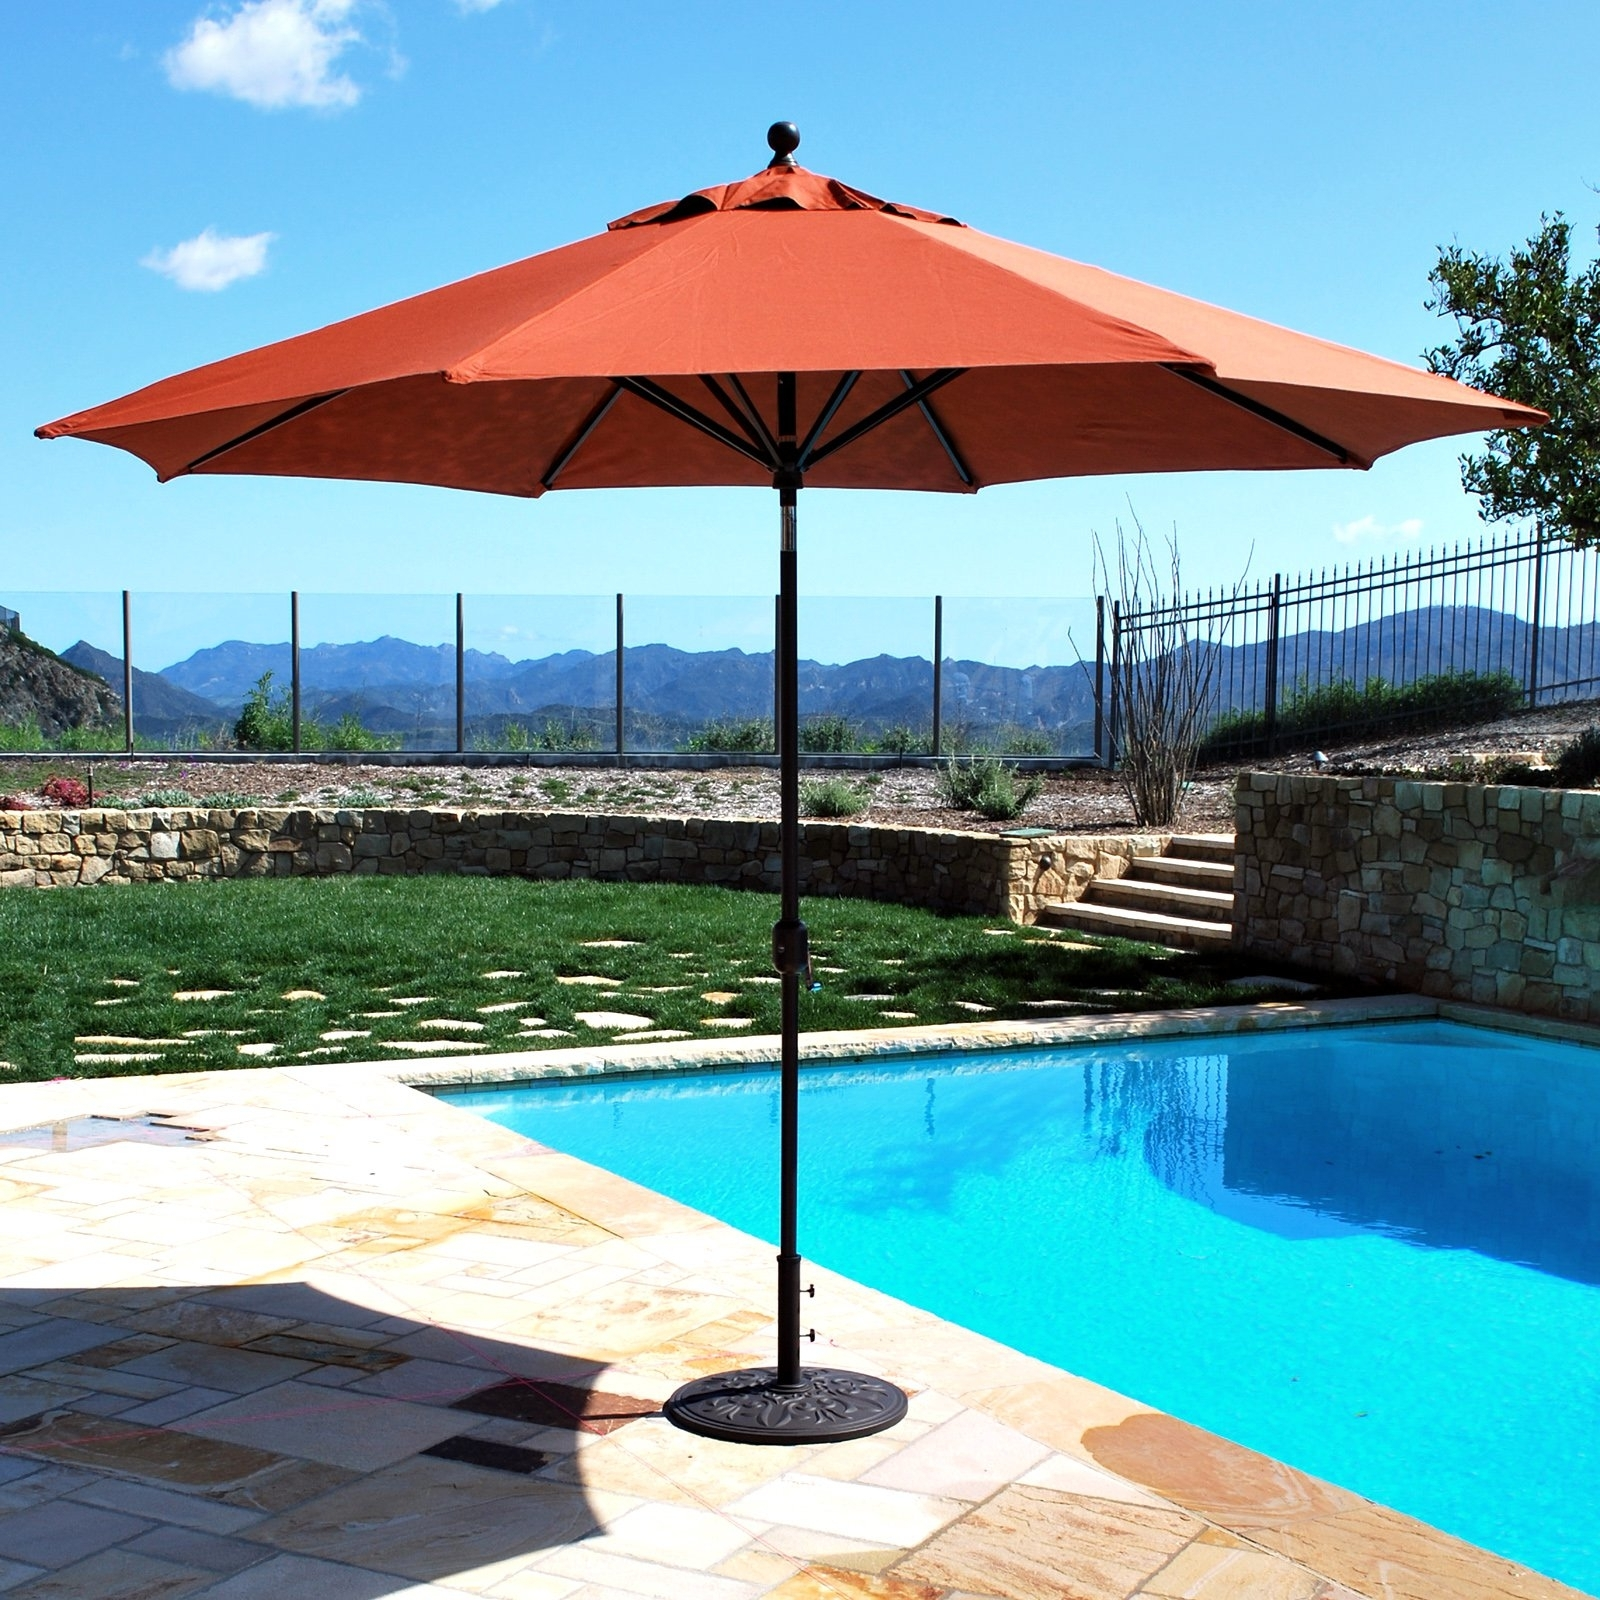 11 Ft Patio Umbrellas With Best And Newest Galtech Sunbrella 11 Ft (View 4 of 20)